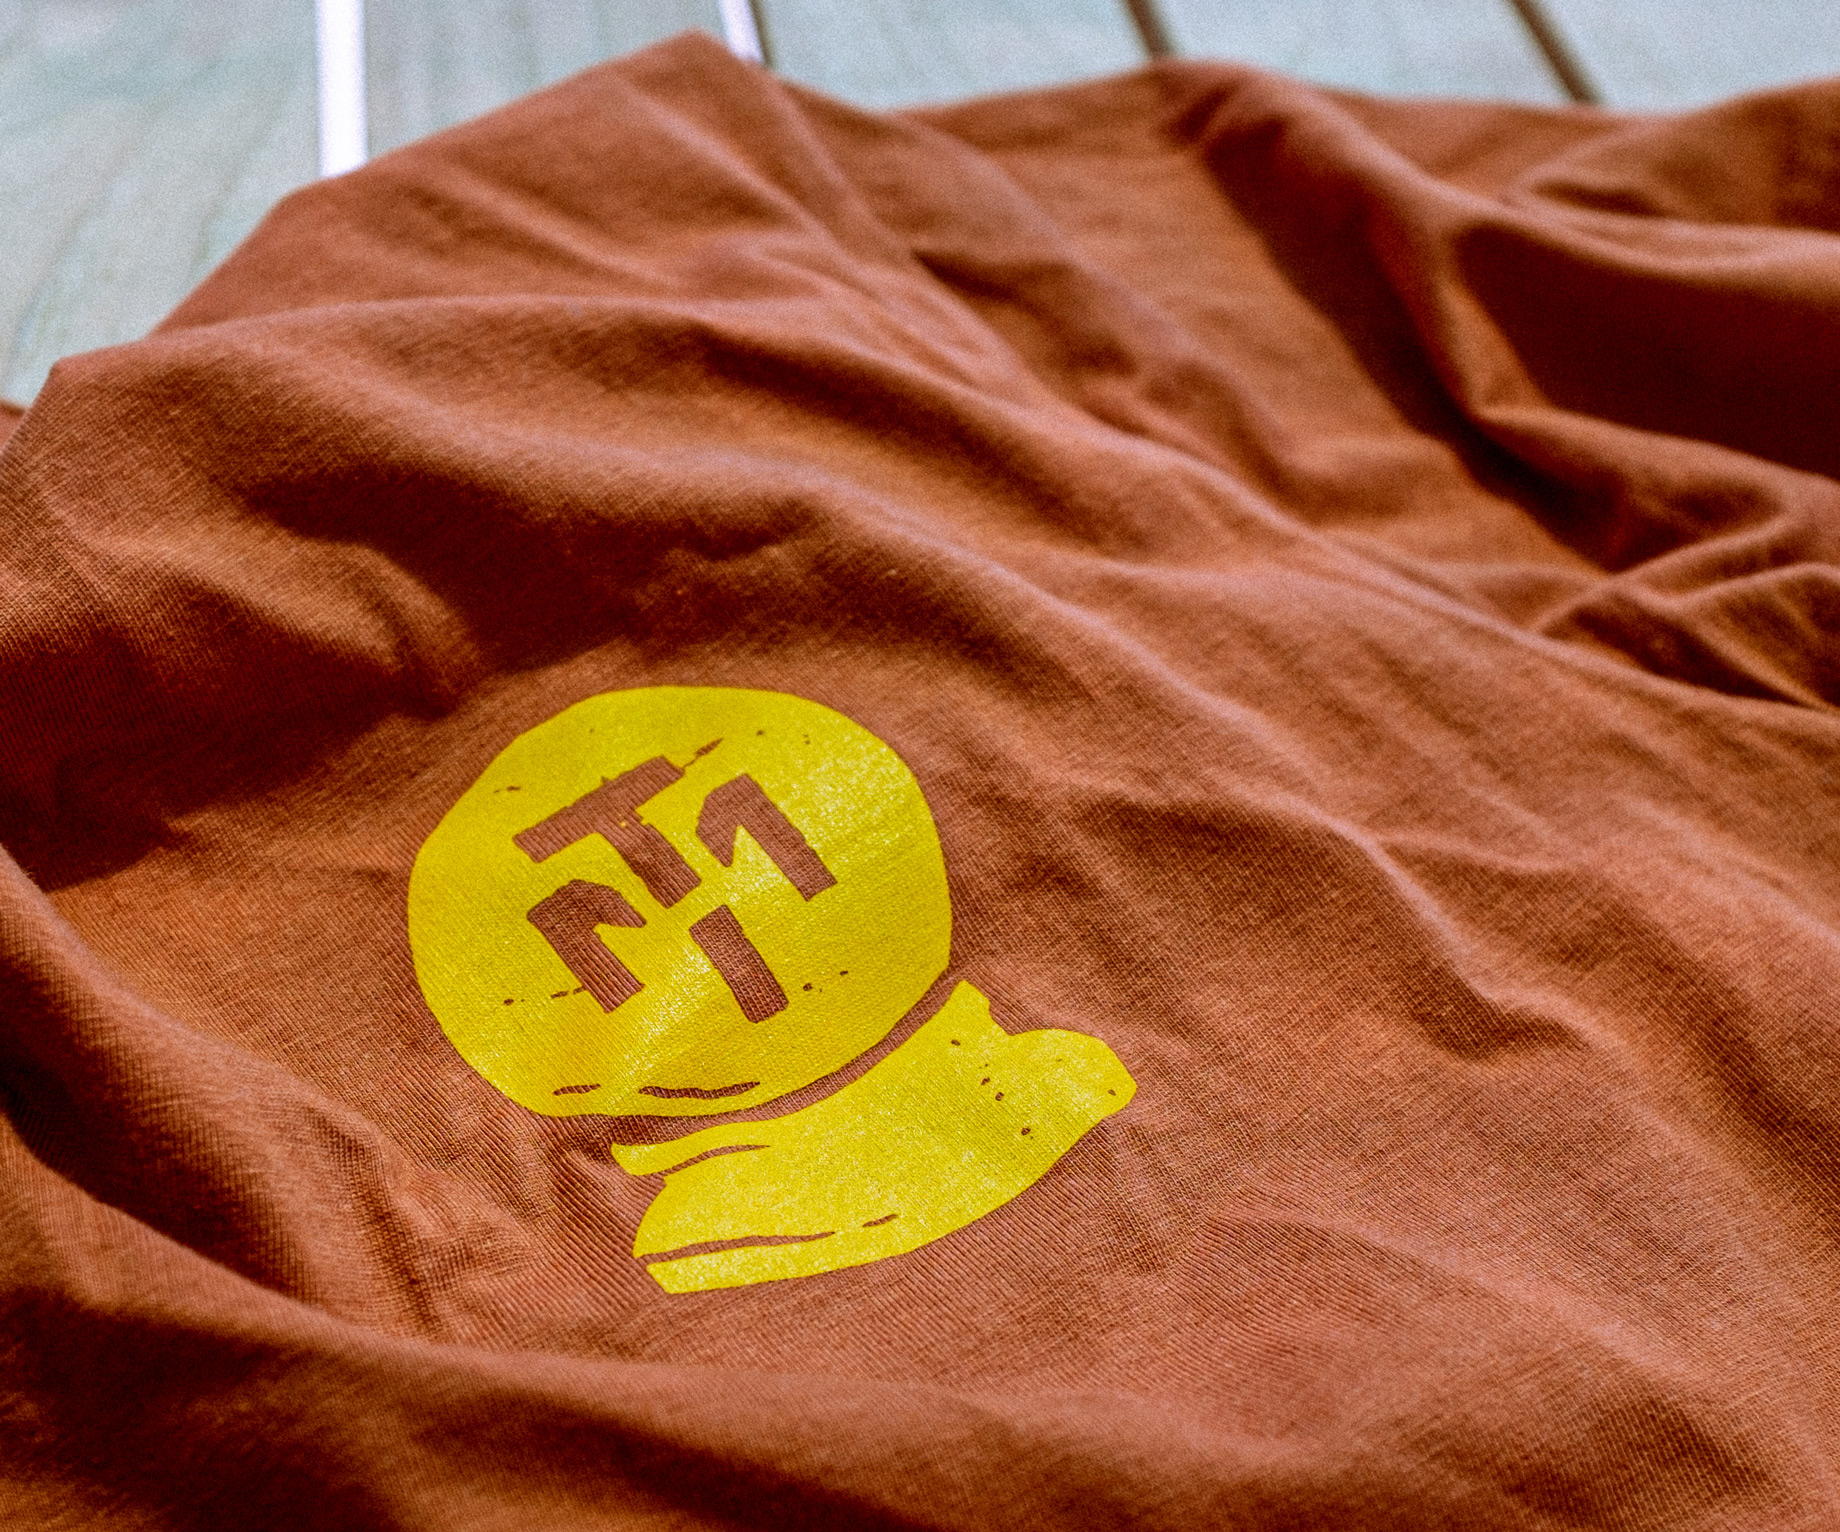 Tshirt with screen printed logo on it